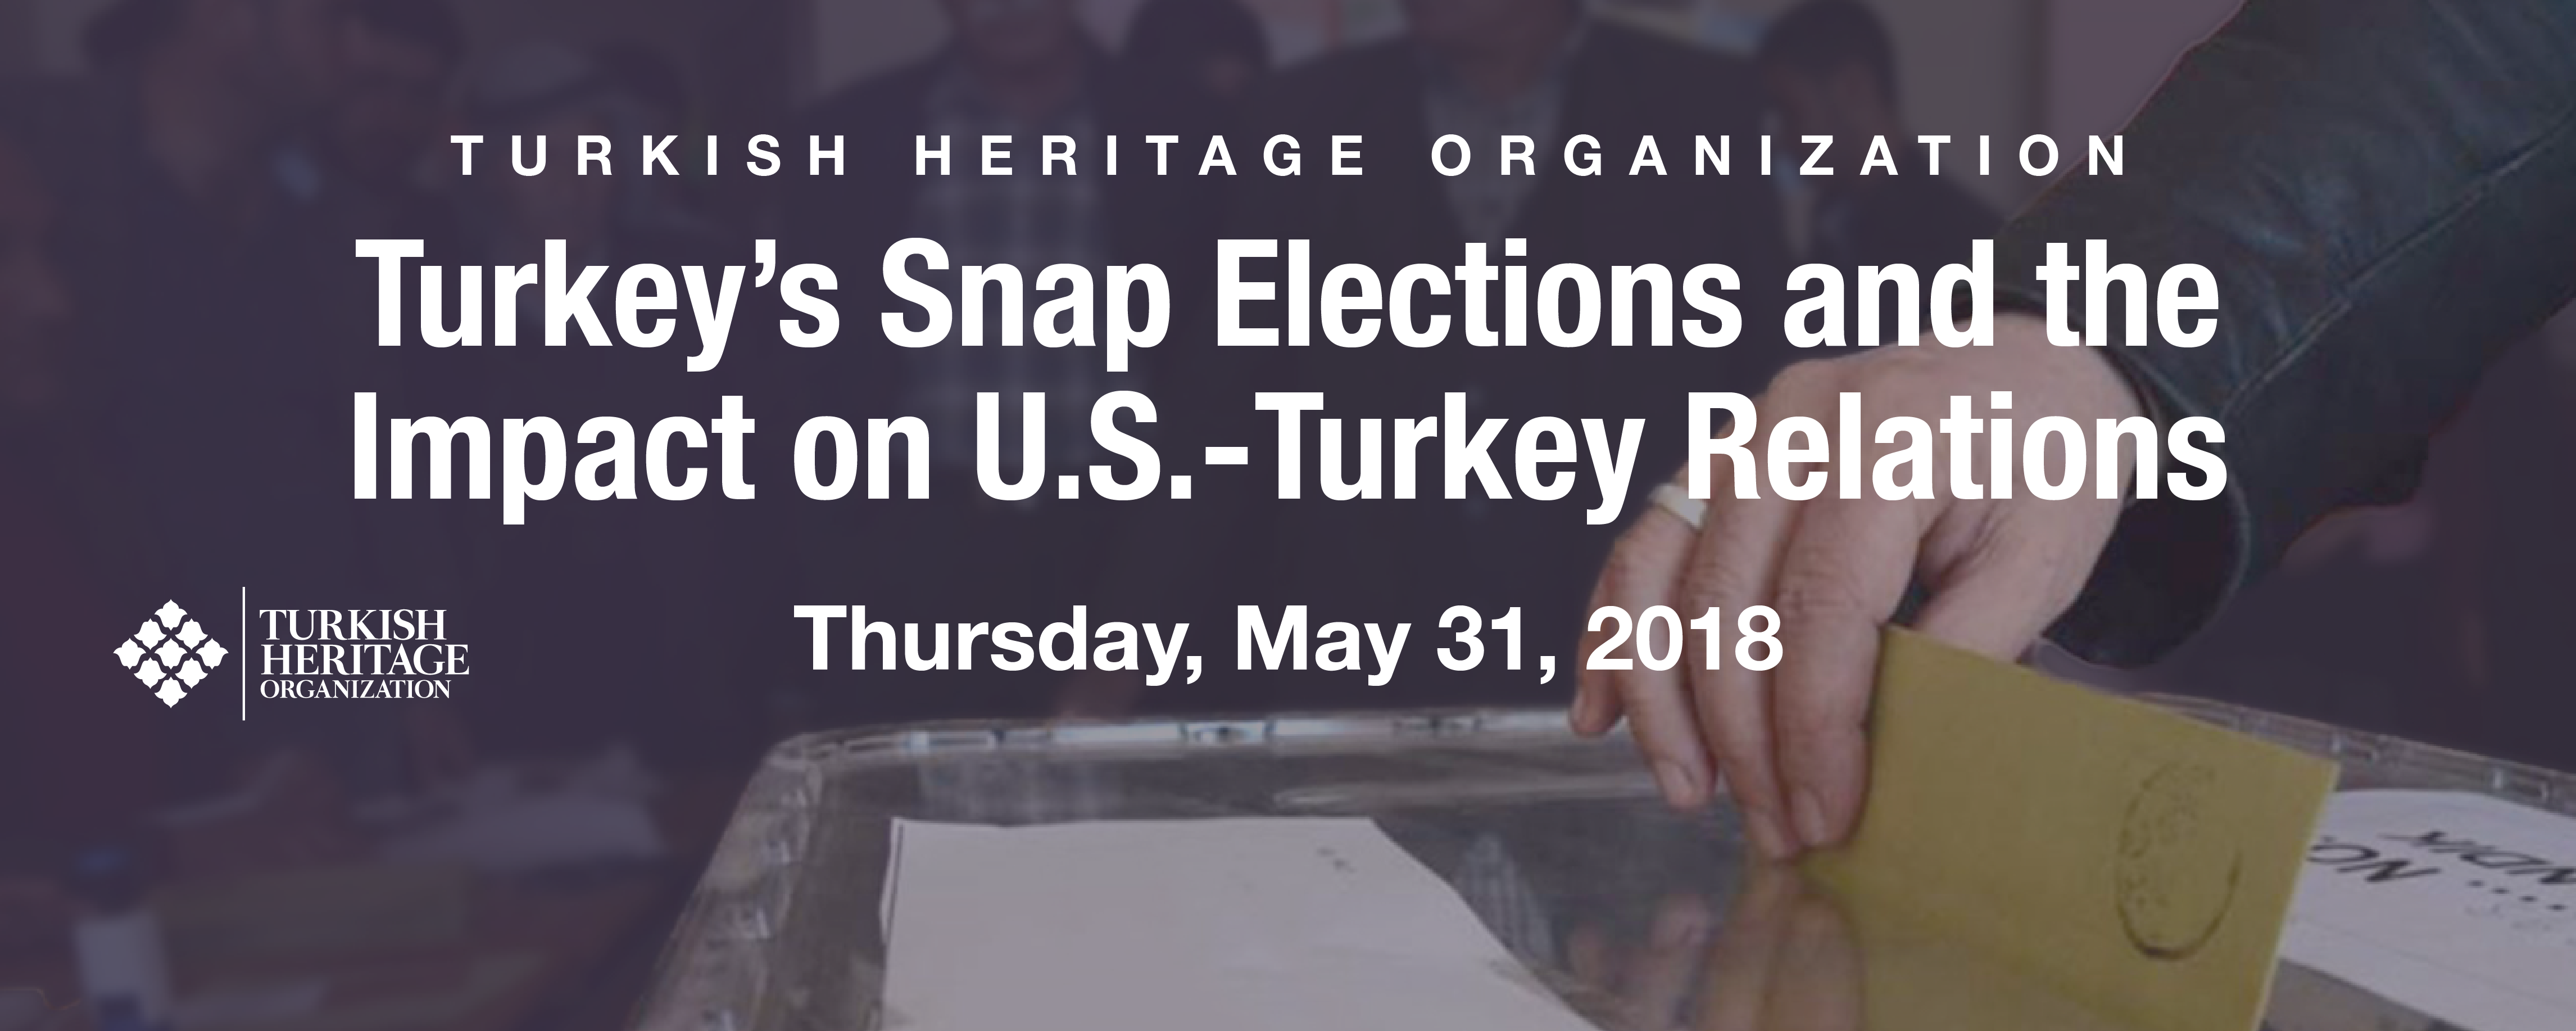 Turkey's Snap Elections and the Impact on U.S.-Turkey Relations